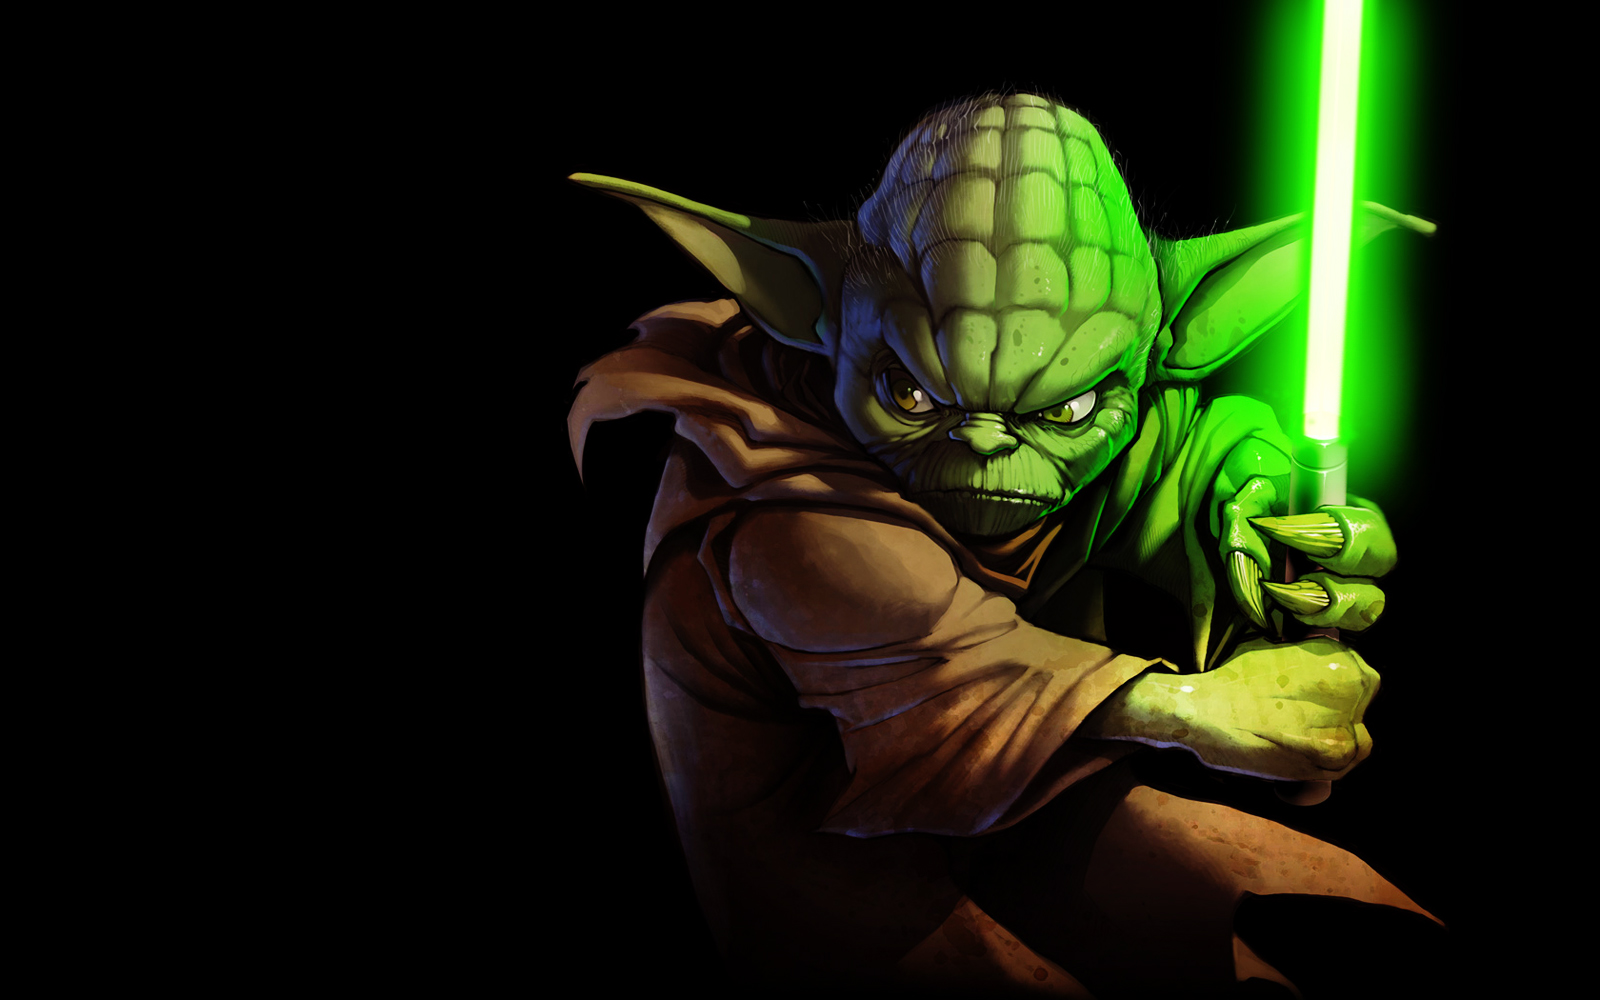 yoda wallpapers - photo #8